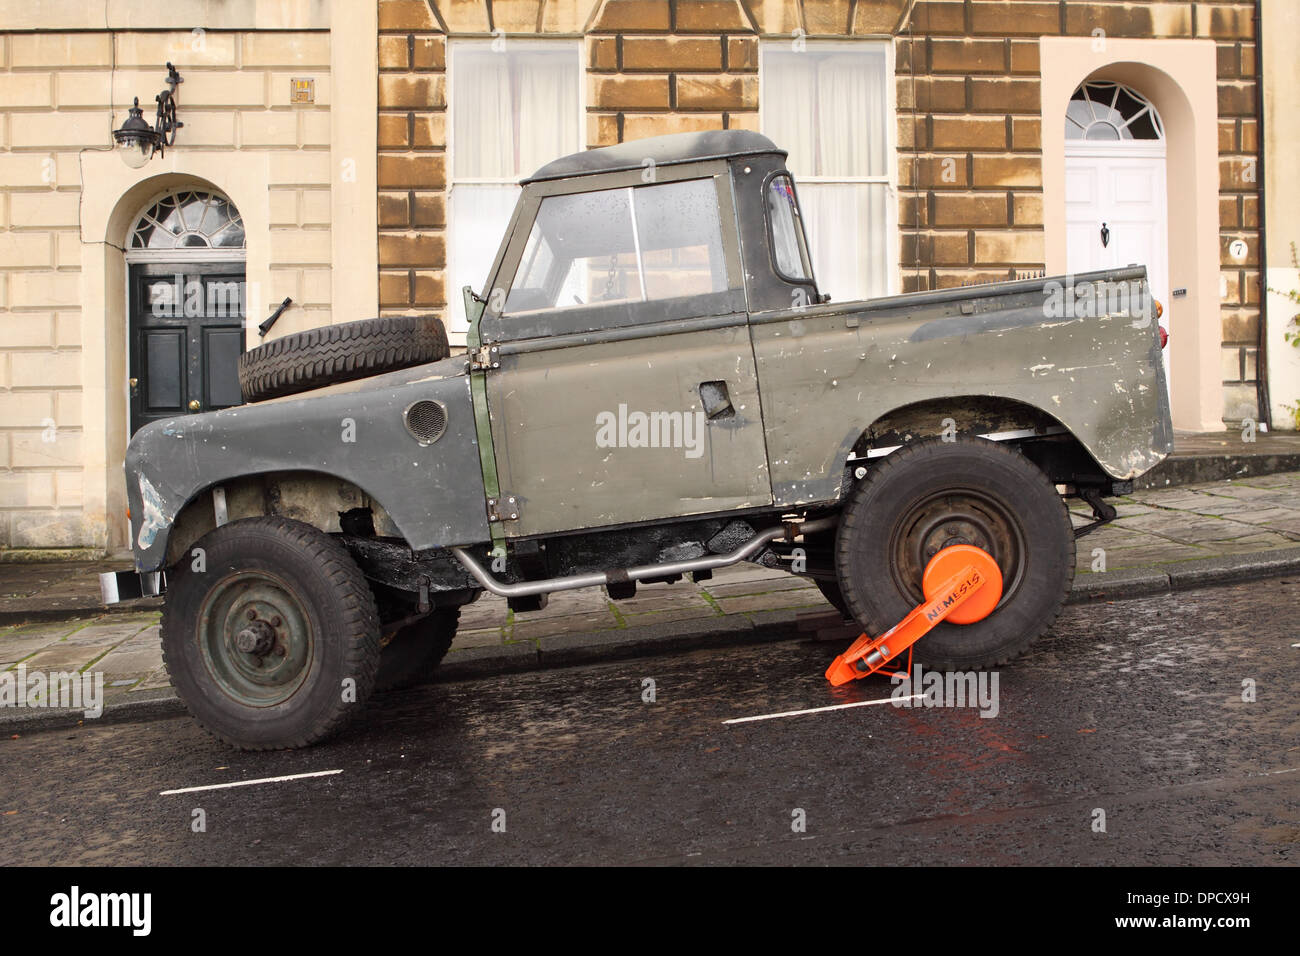 Landrover parked on a hill in Bath city England with a Nemesis security clamp lock - Stock Image